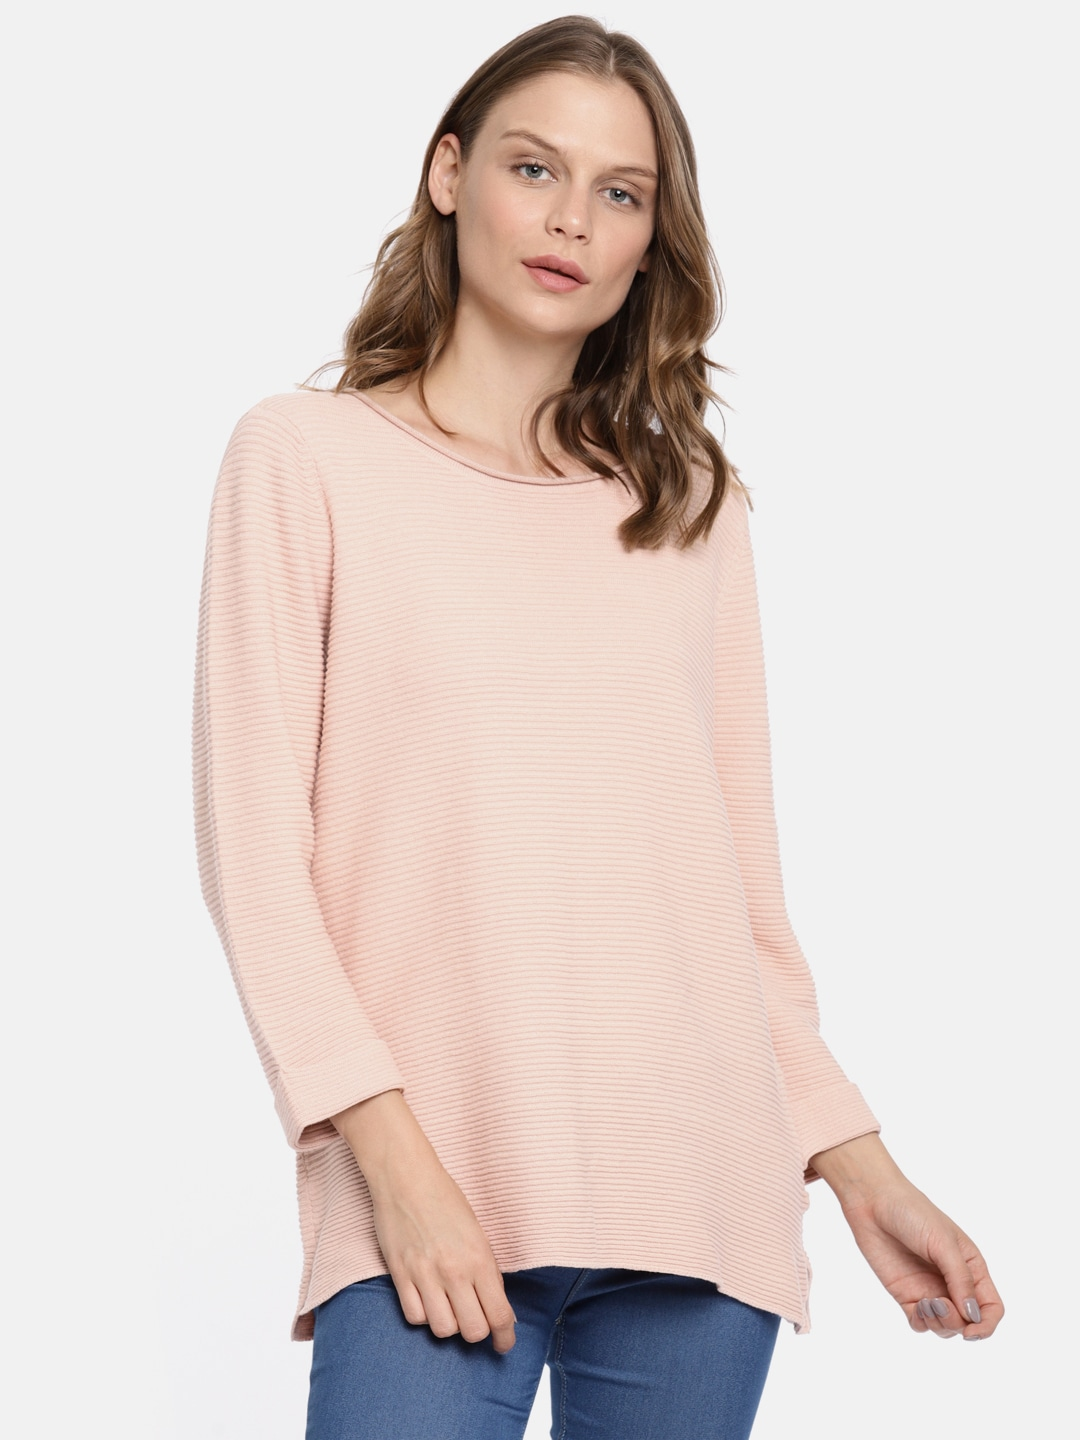 7a82d4aff7c572 Sweaters for Women - Buy Womens Sweaters Online - Myntra